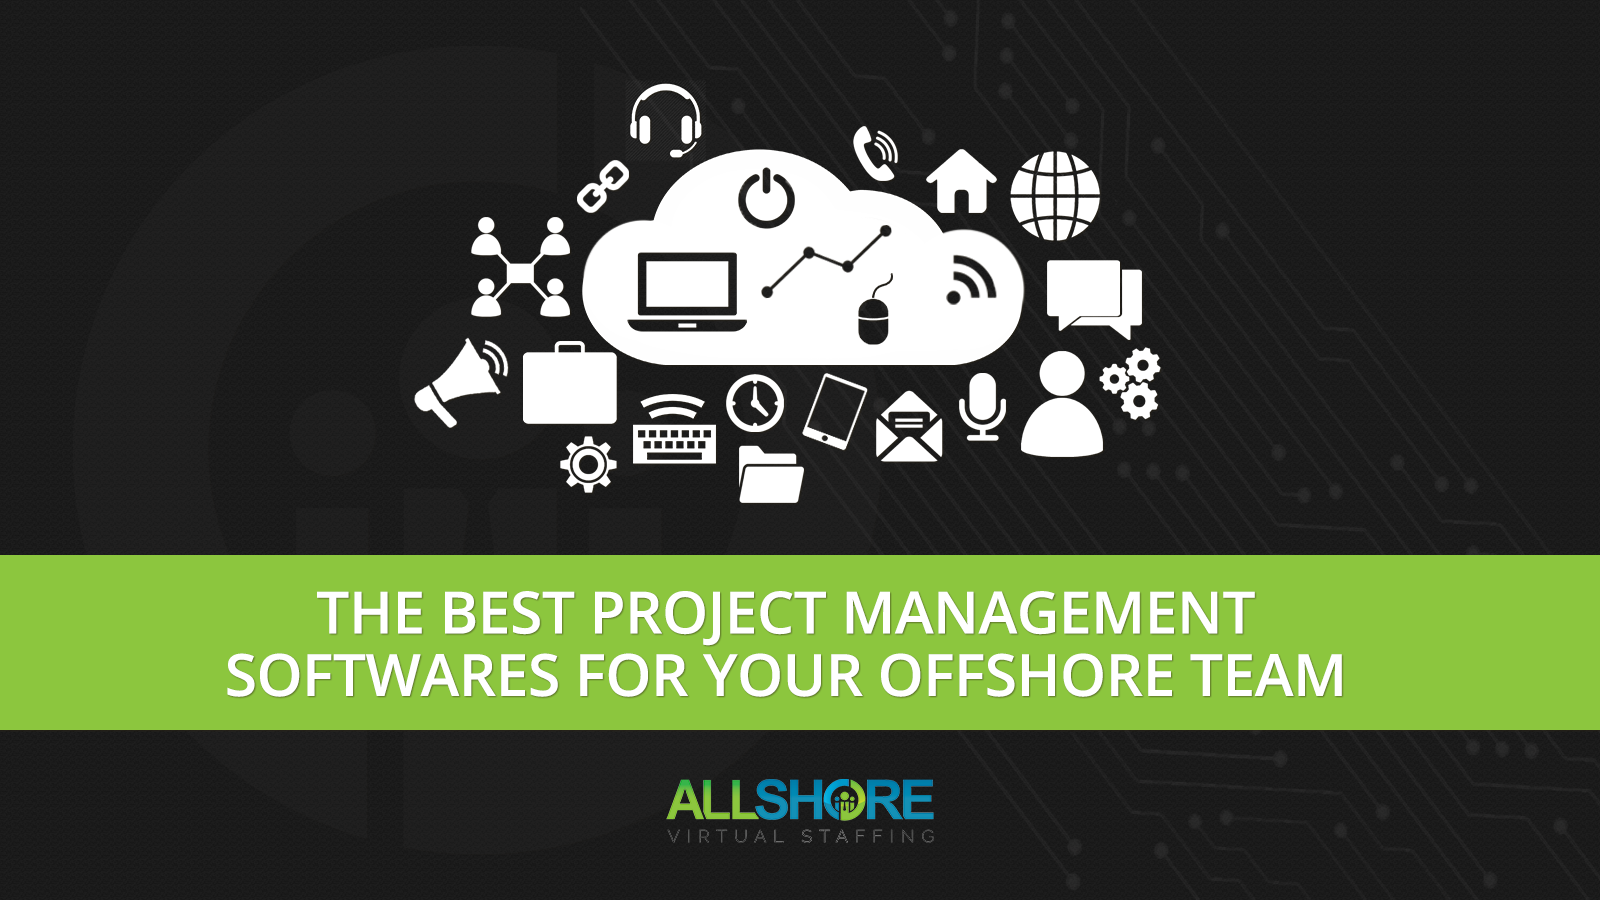 The Best Project Management Softwares for Your Offshore Team